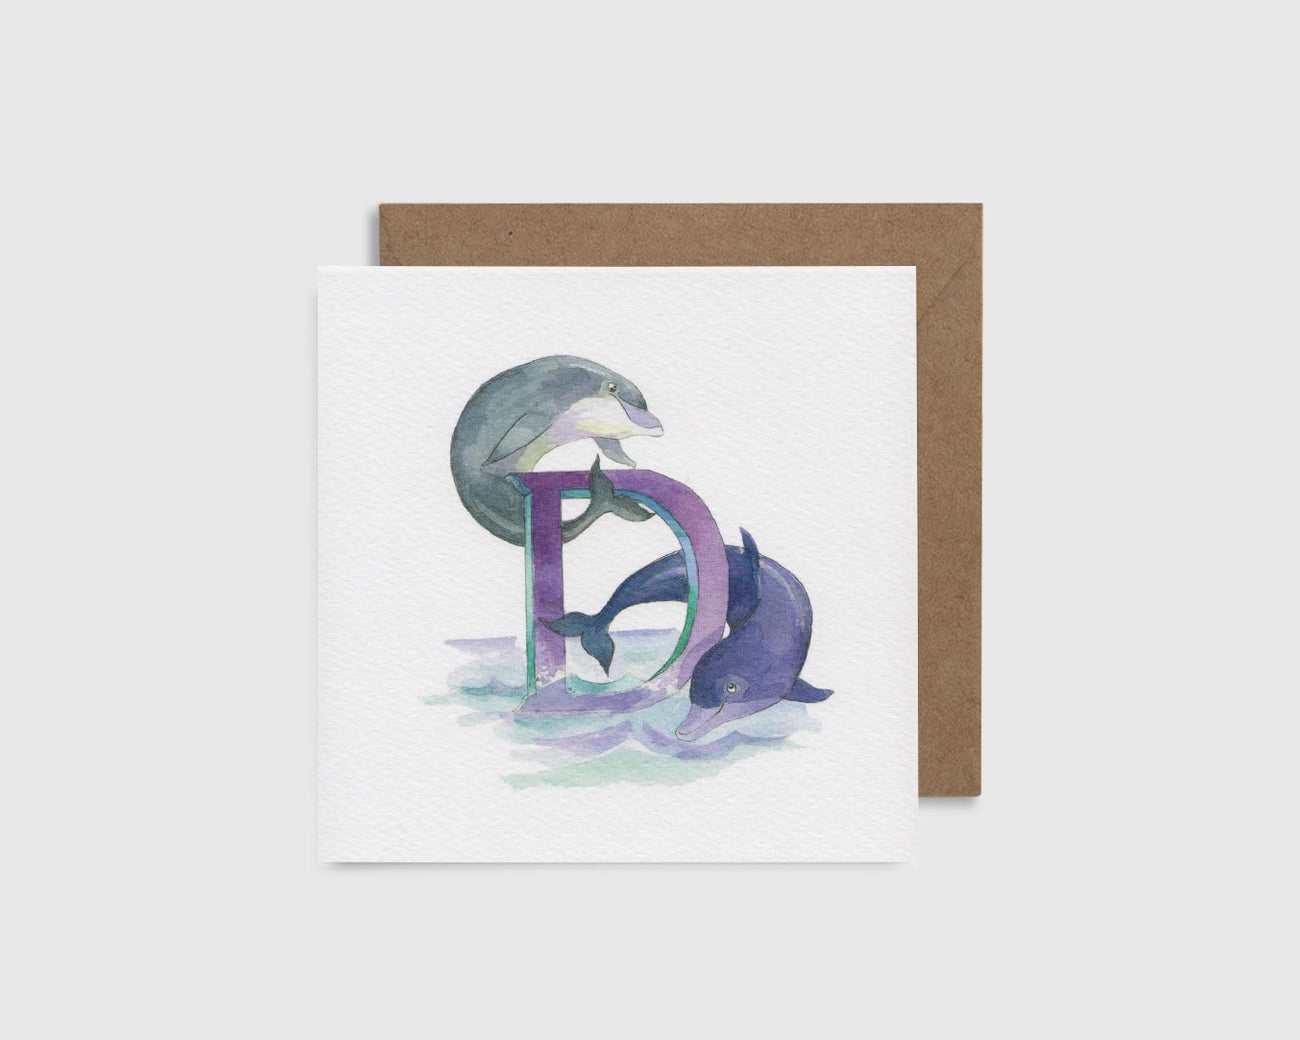 D is for Dolphin - D comme Dauphin